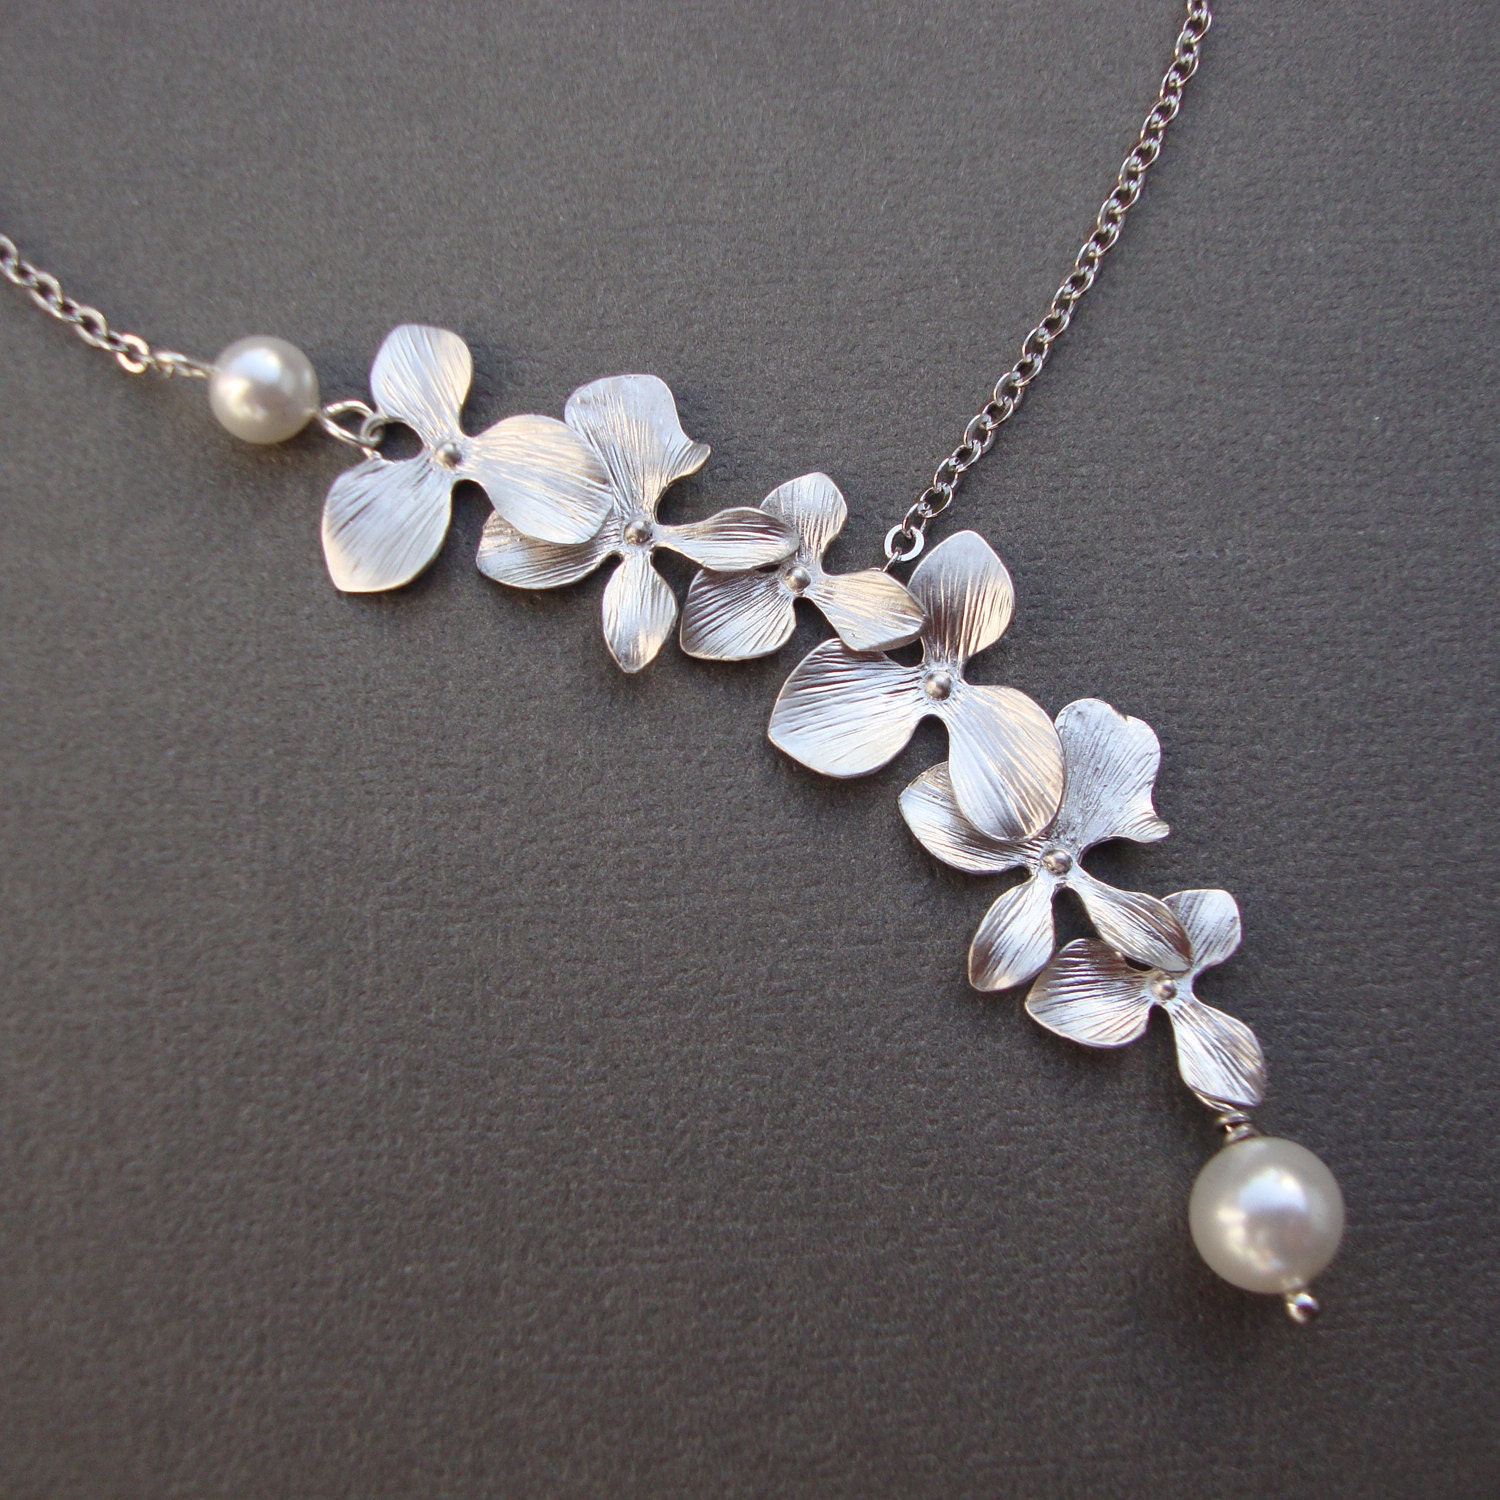 Orchid Flower Necklace bridesmaids bridal wedding jewelry